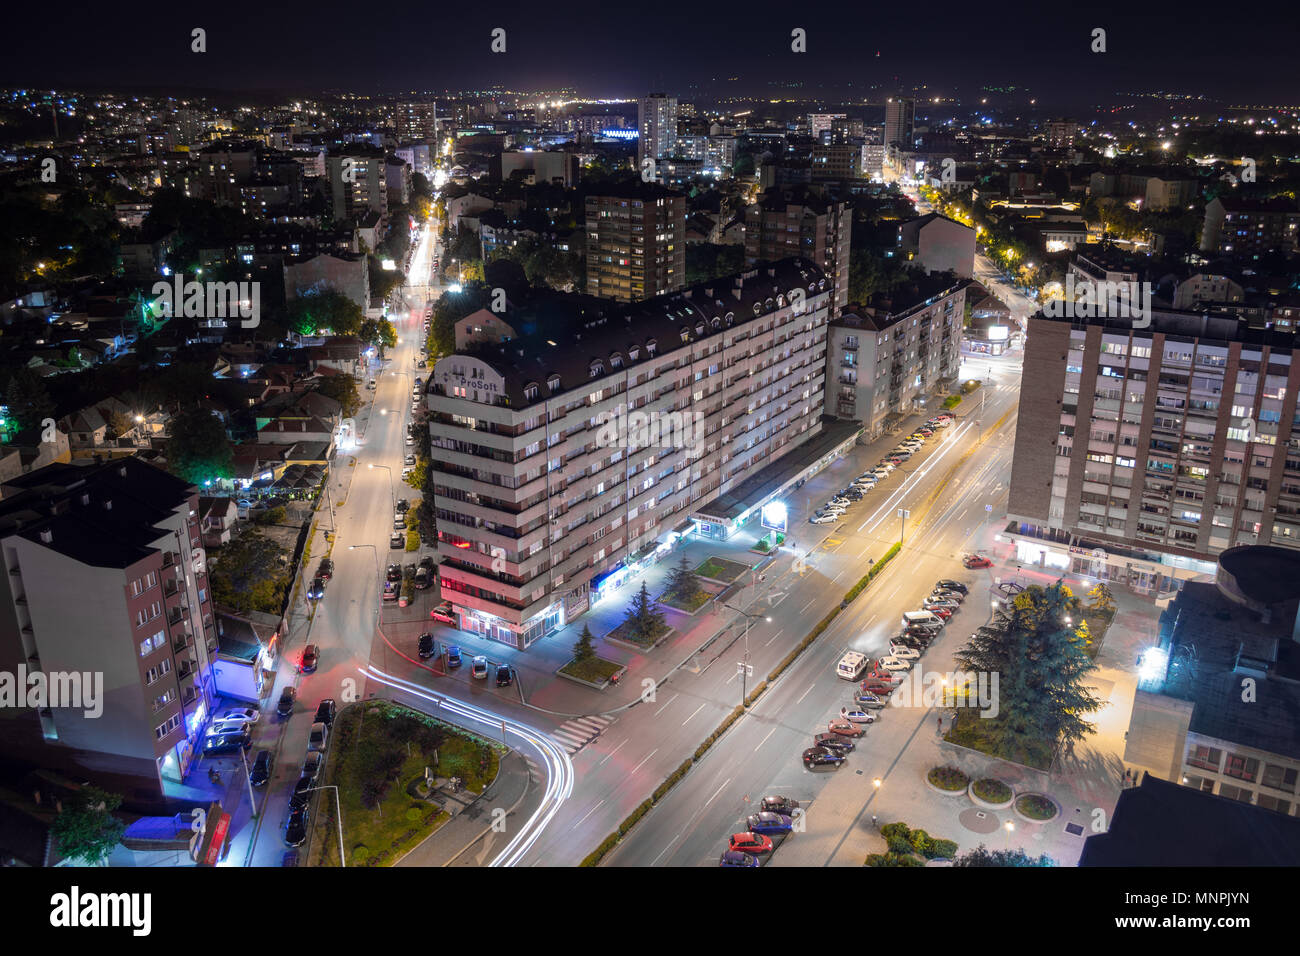 nis-serbia-may-16-2018-nighttime-citysca